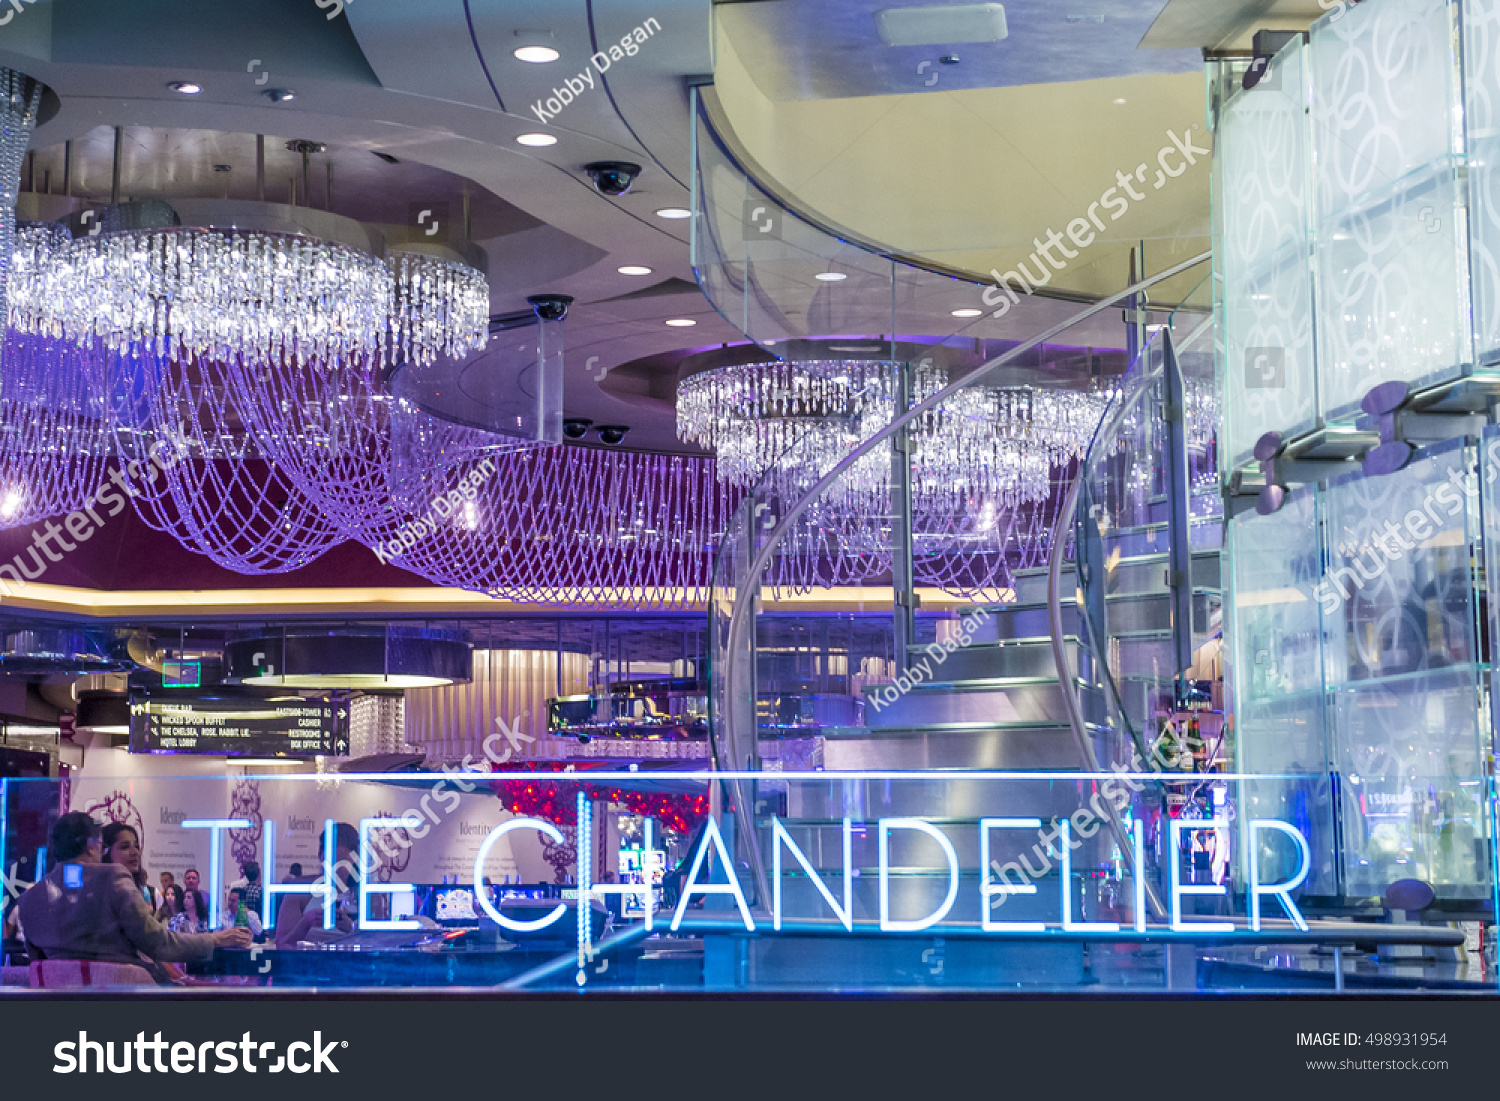 Las vegas oct 05 chandelier bar stock photo edit now shutterstock las vegas oct 05 the chandelier bar at the cosmopolitan hotel casino in aloadofball Image collections